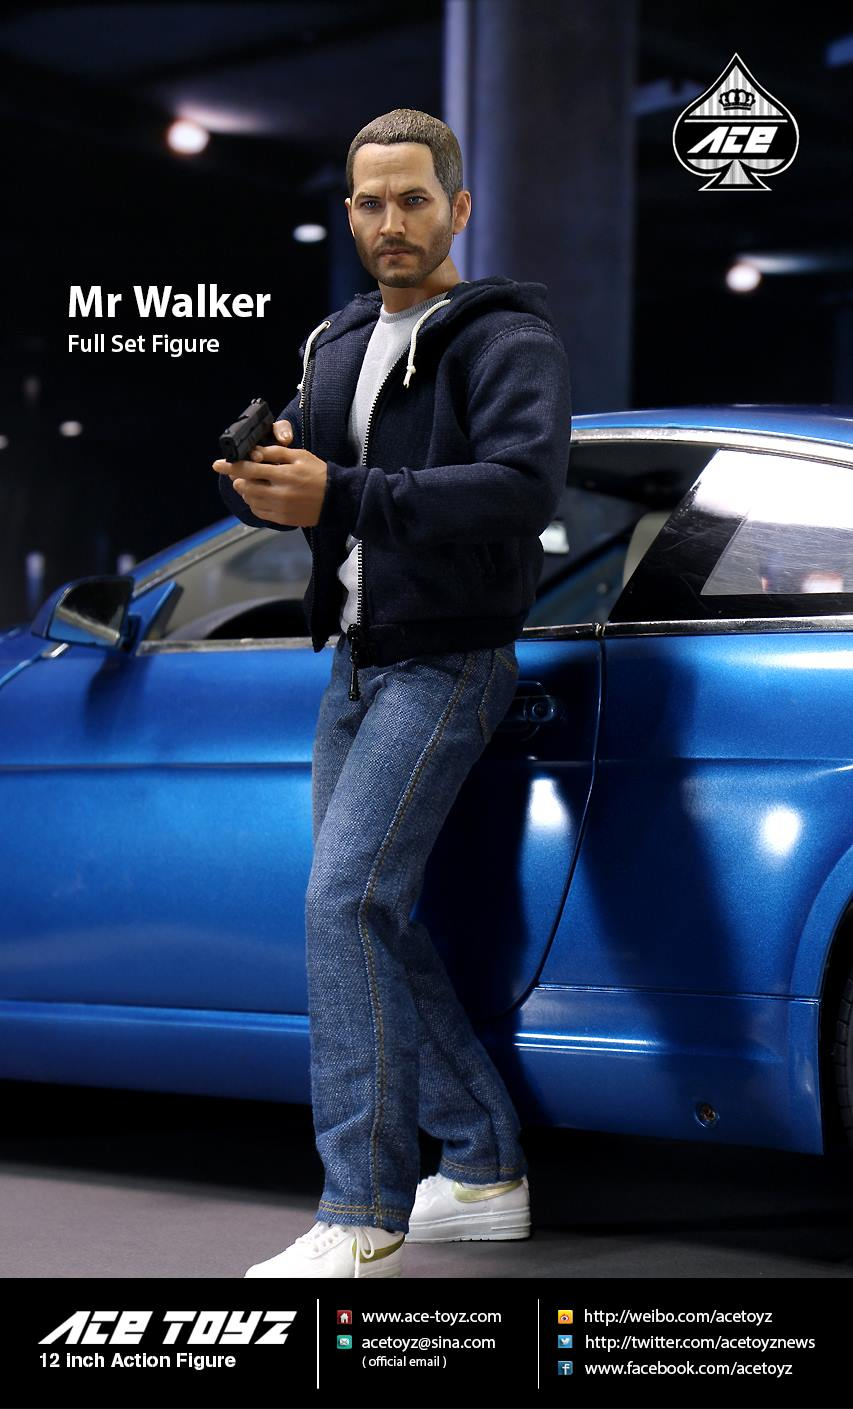 1/6 scale figure doll Fast & Furious Paul Walker Brian.12 action figure doll.Collectible figure model toy,car not include brand new 1 6 scale fast